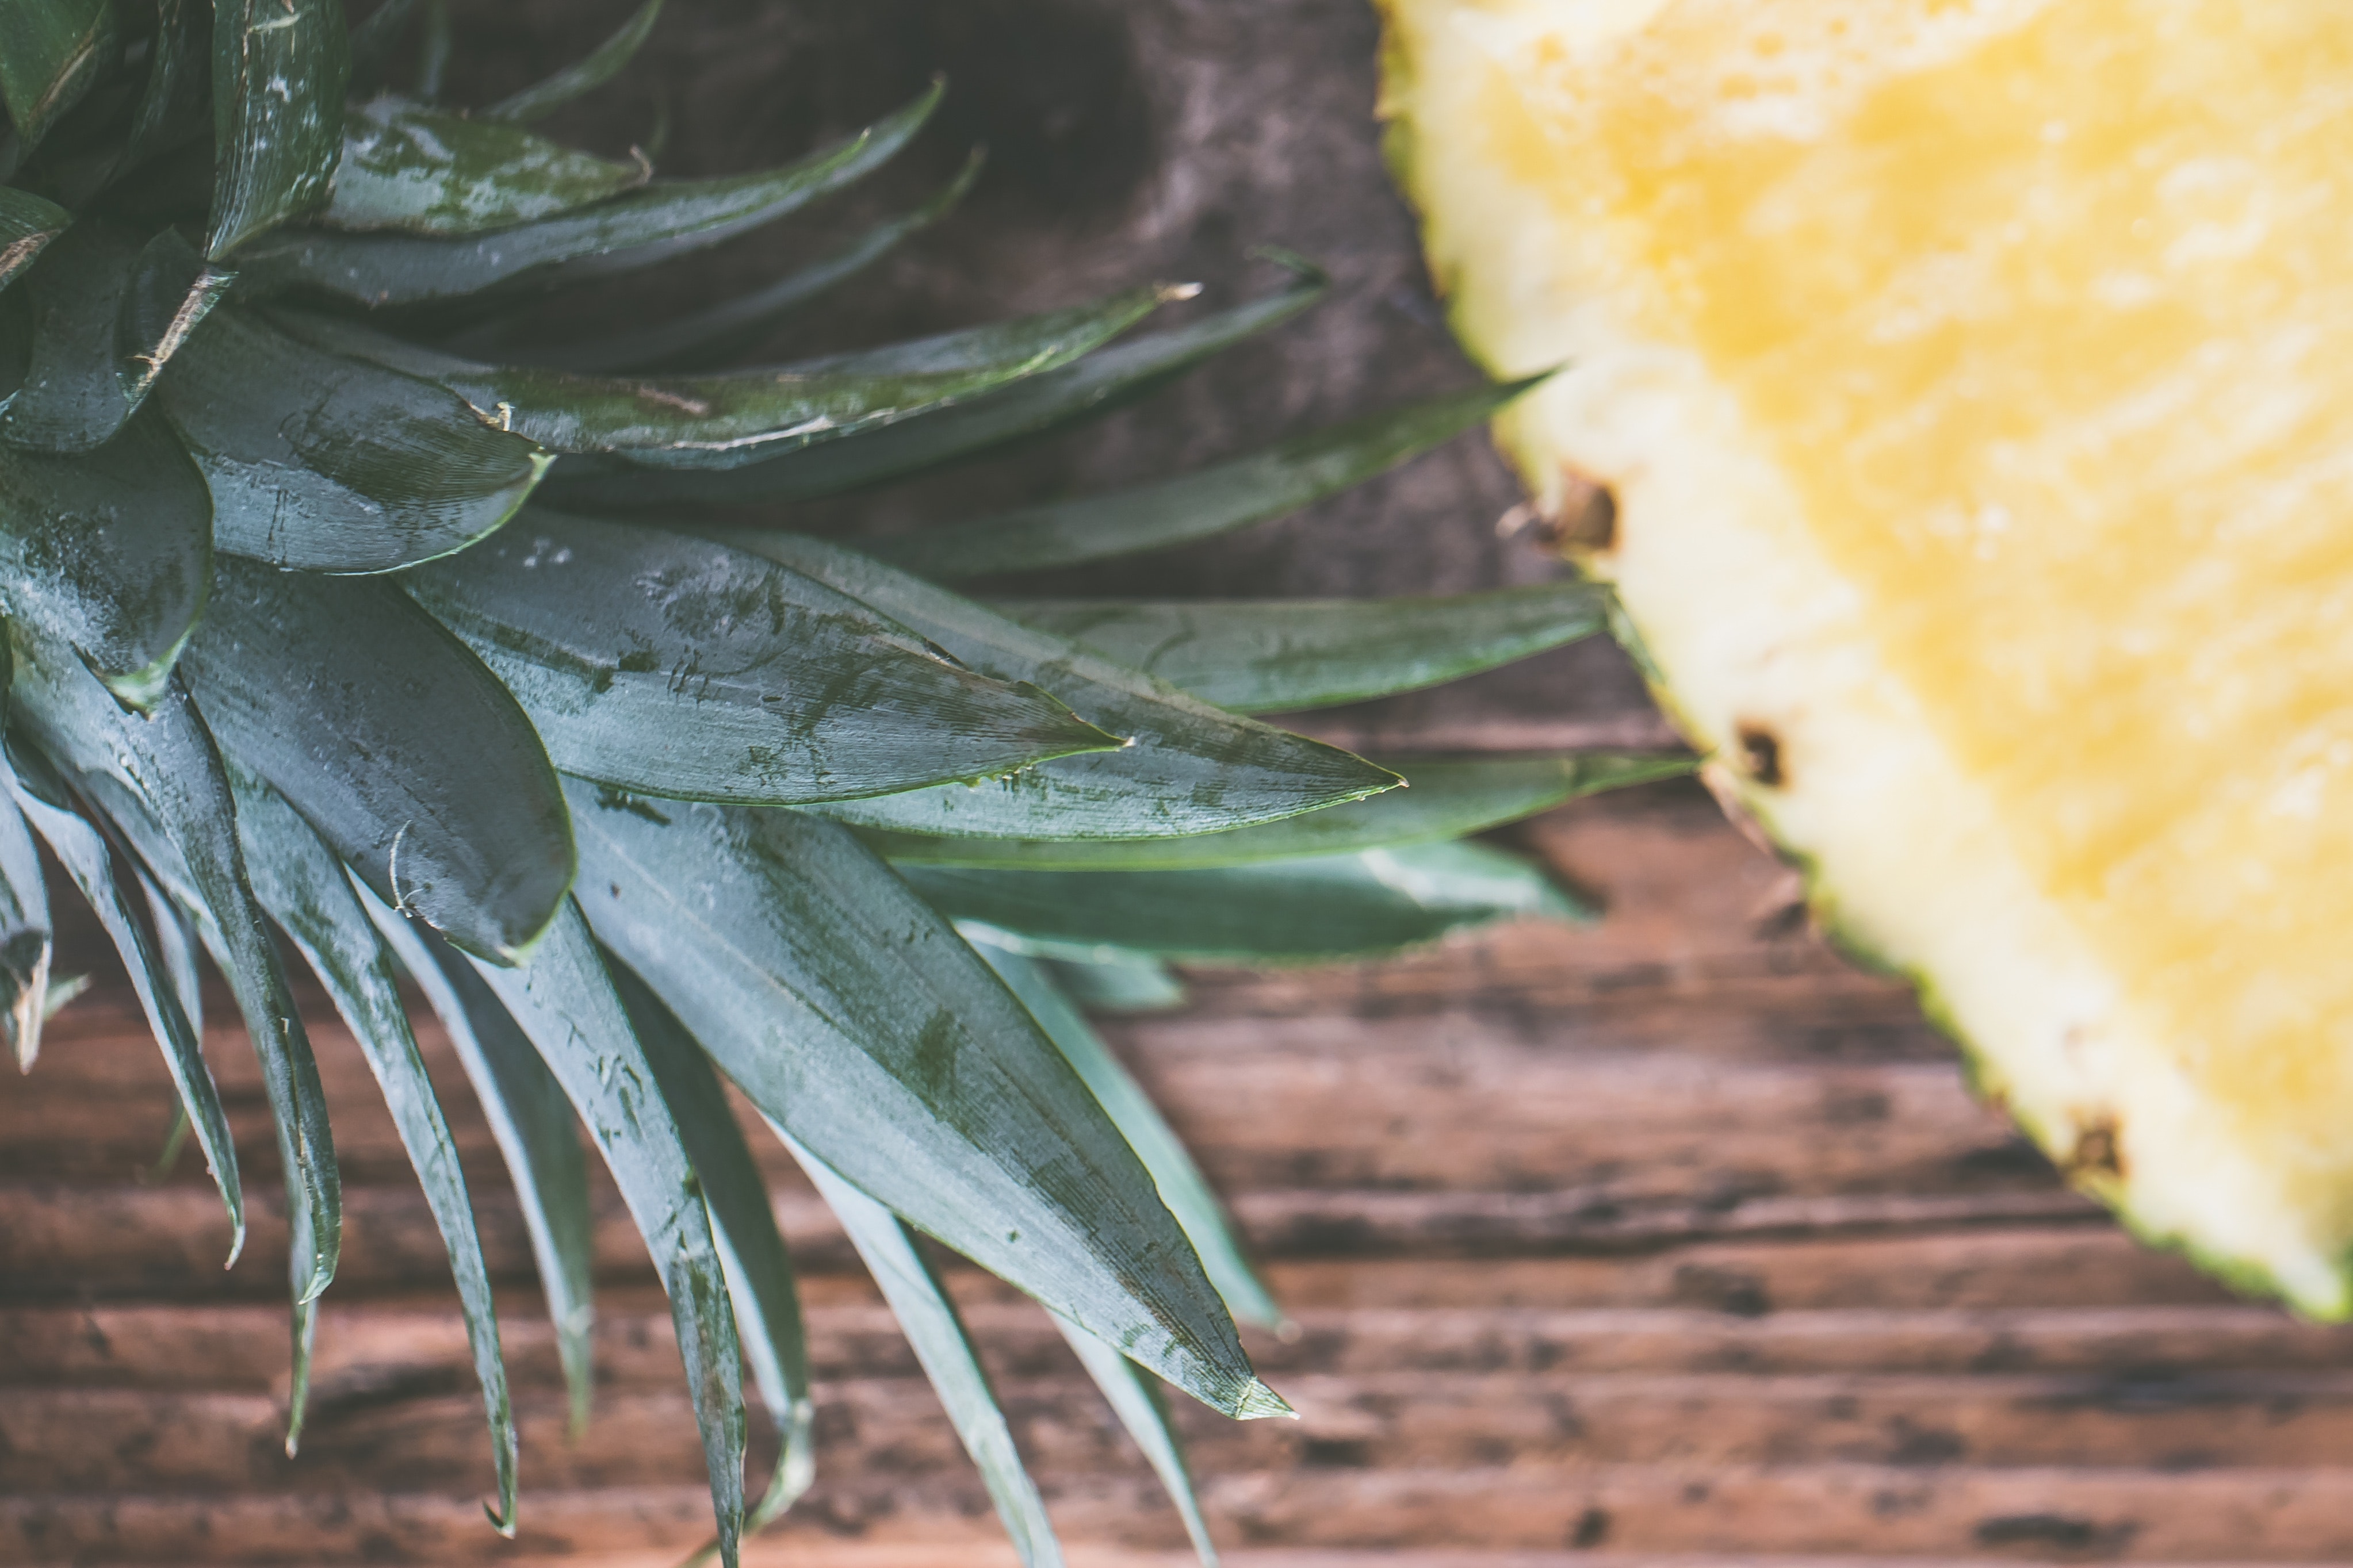 Sliced Pineapple, Close-up, Leaves, Wood, Tropical fruit, HQ Photo